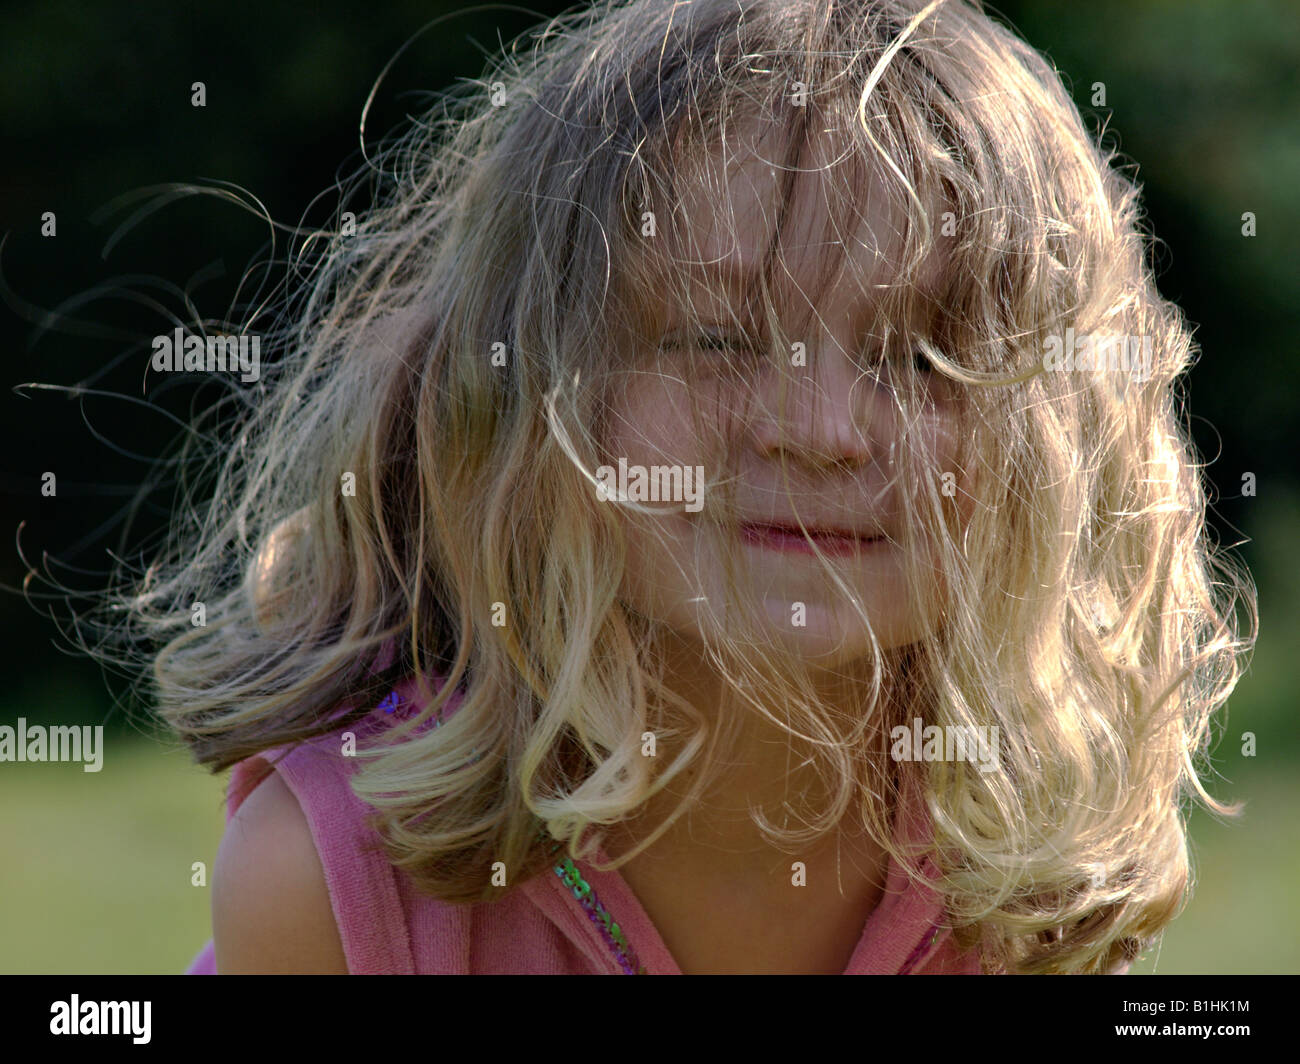 Young Female Child Bad Hair Day Stock Photo